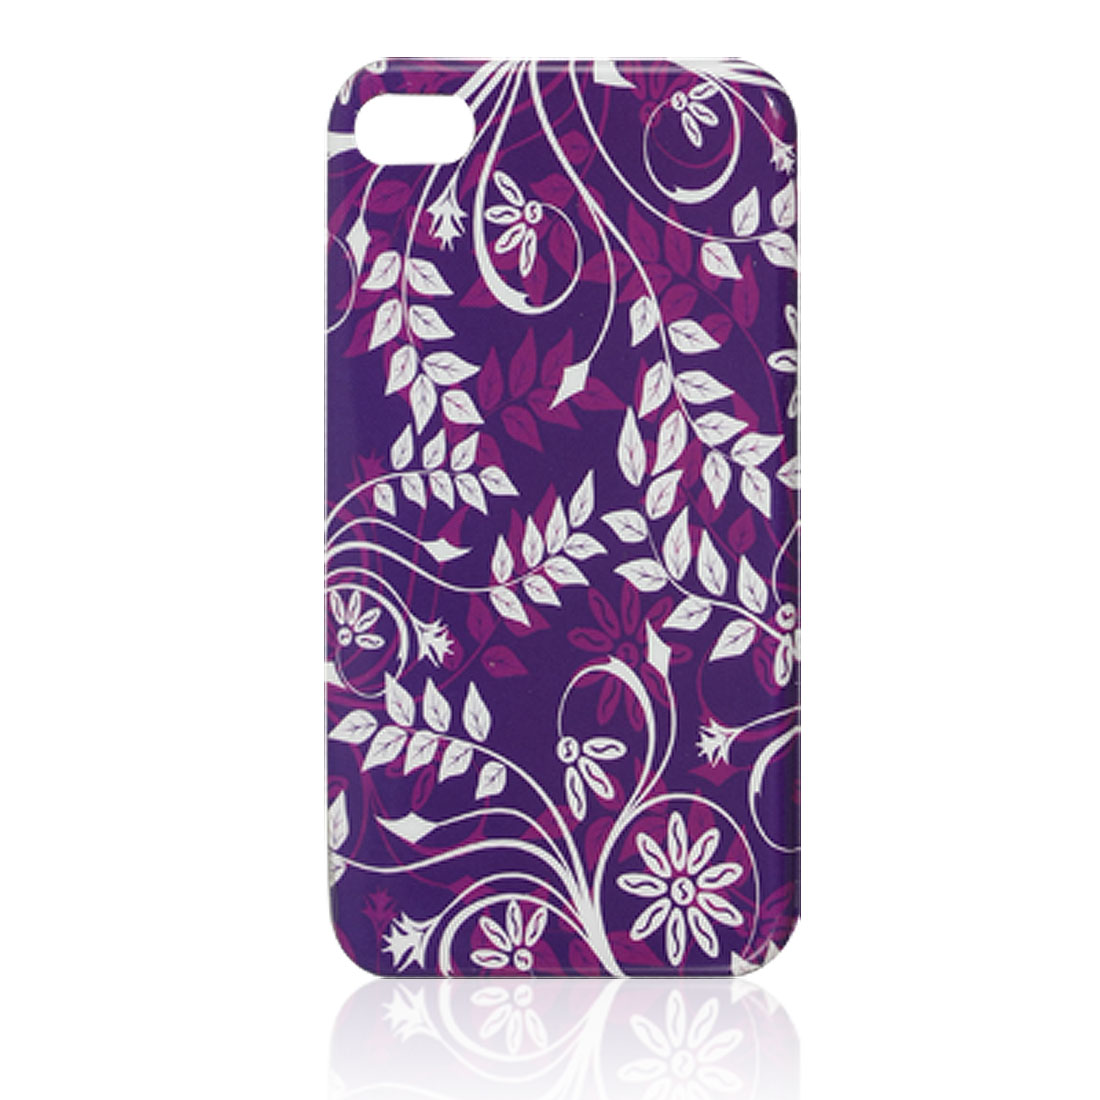 IMD Vine Floral Pattern Purple Plastic Back Cover for iPhone 4 4G 4S